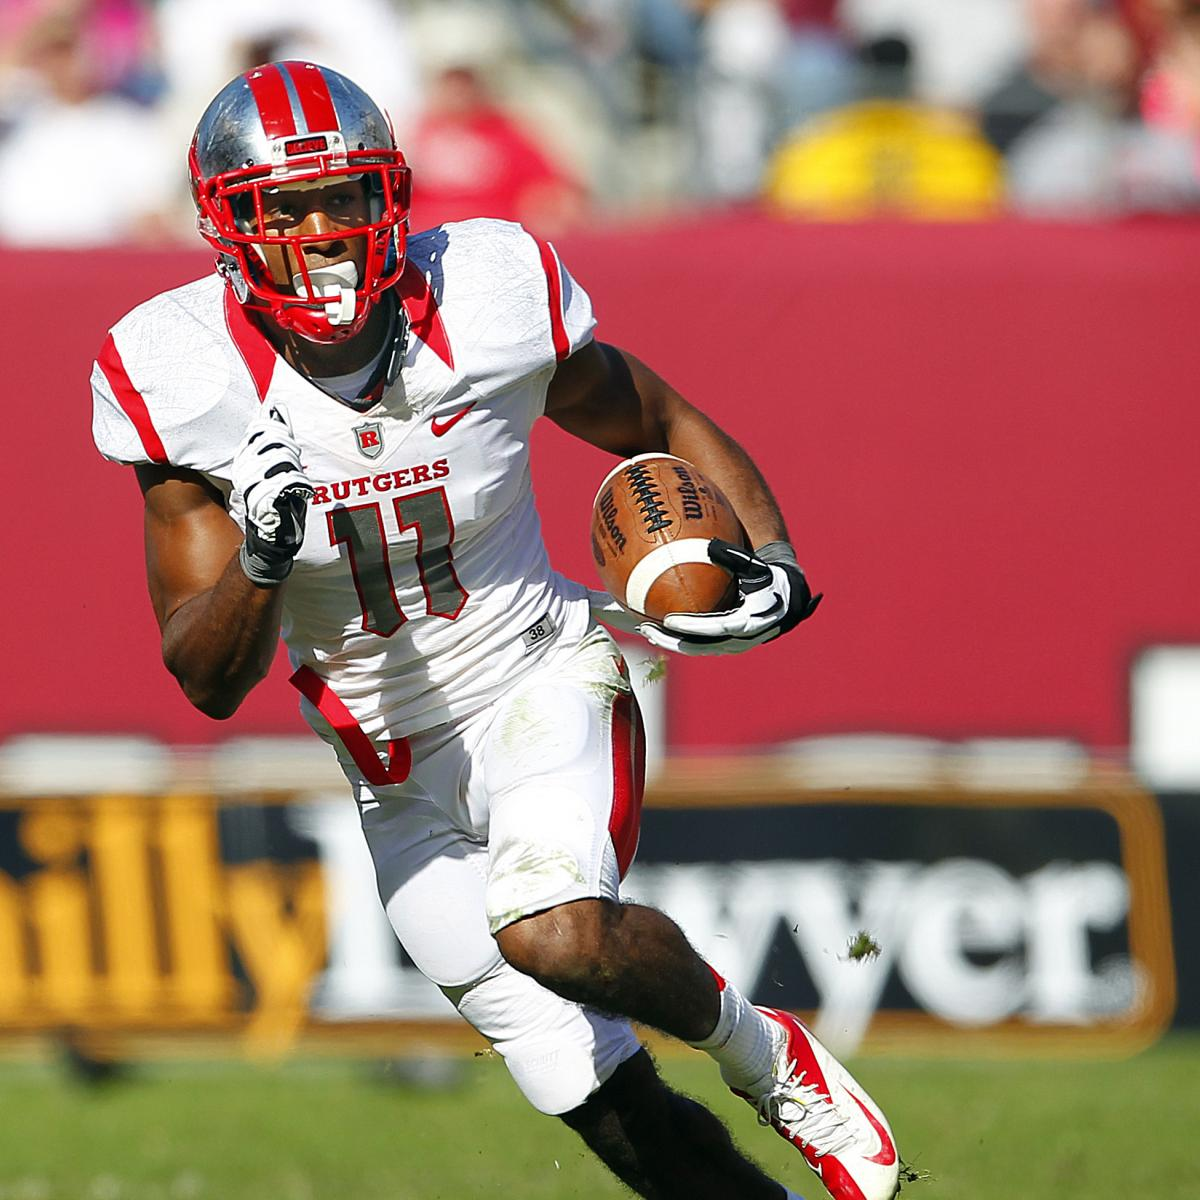 Rutgers Football: Solid Showing at Draft Is Evidence of ...